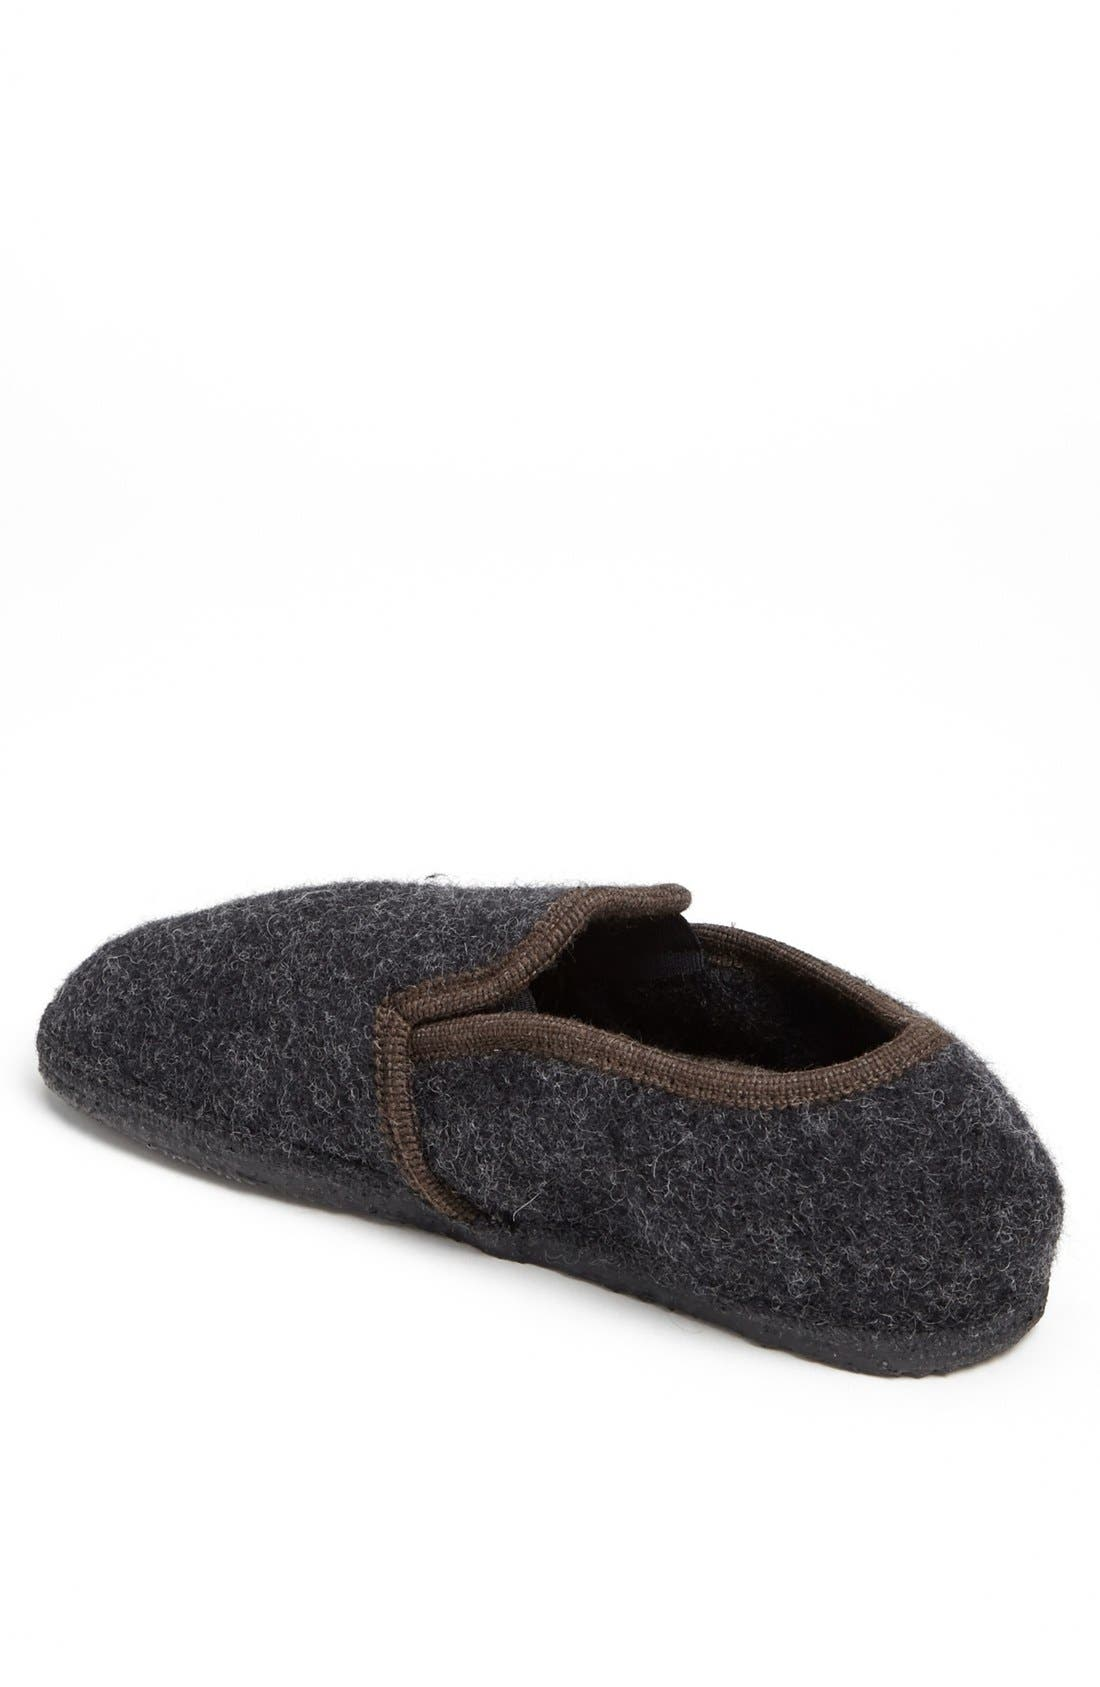 'Andau' Slipper,                             Alternate thumbnail 4, color,                             020